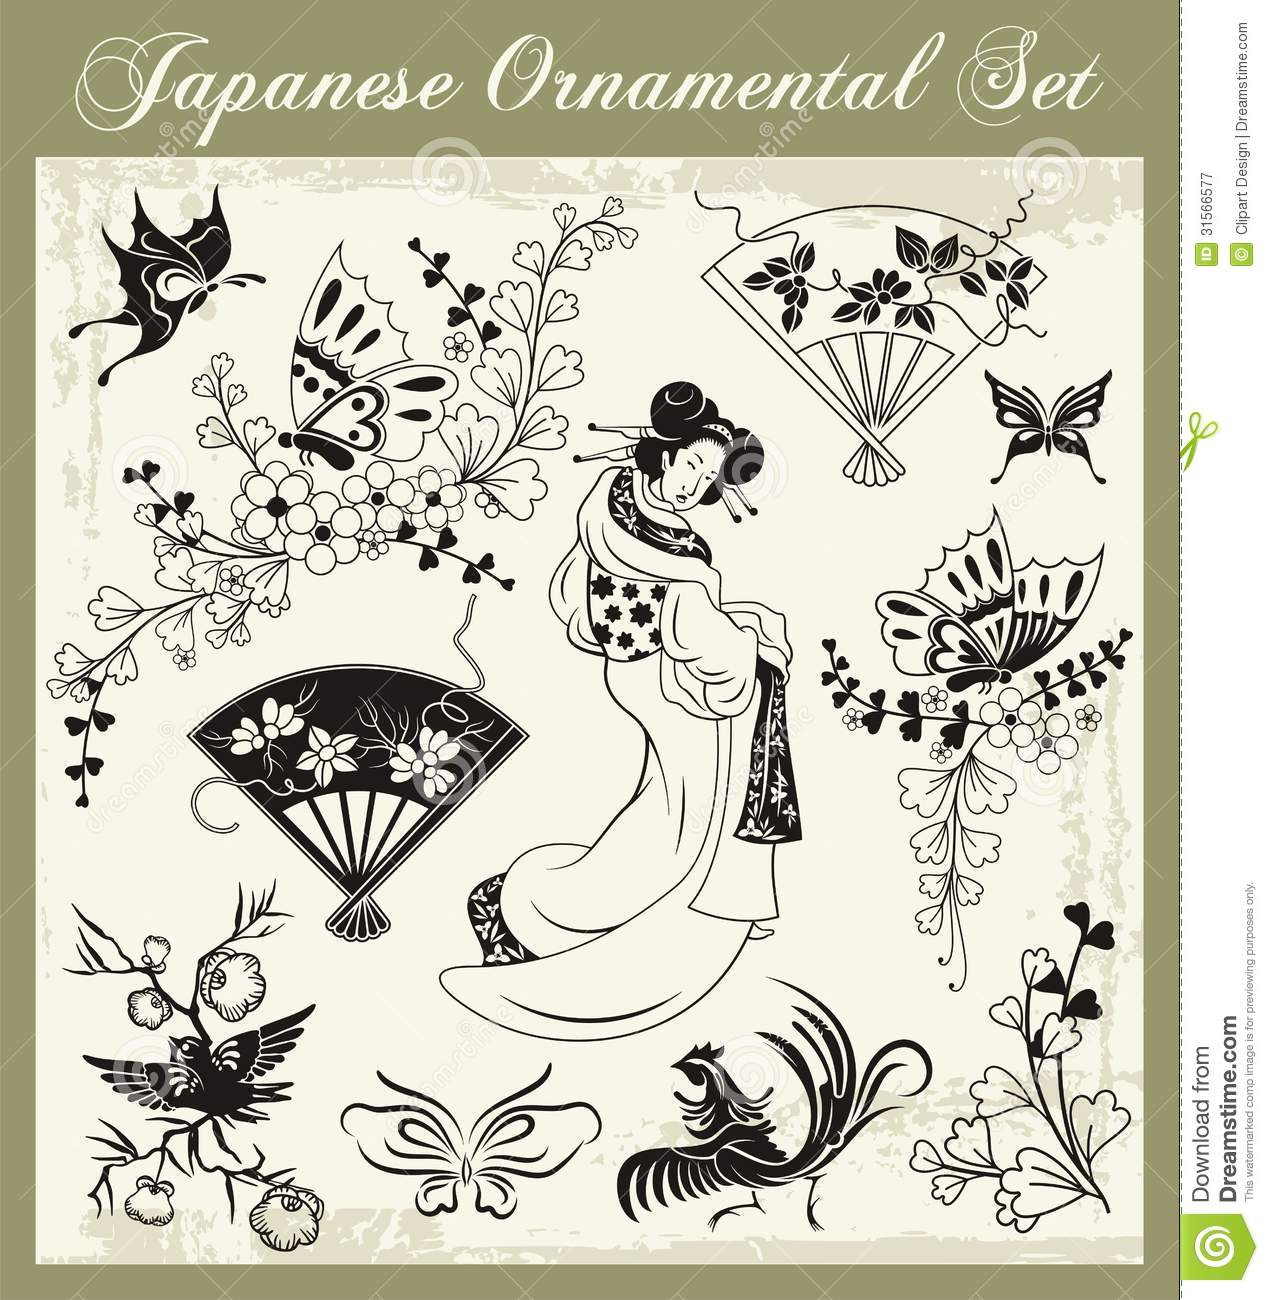 Japanese Traditional Ornaments Set Royalty Free Stock